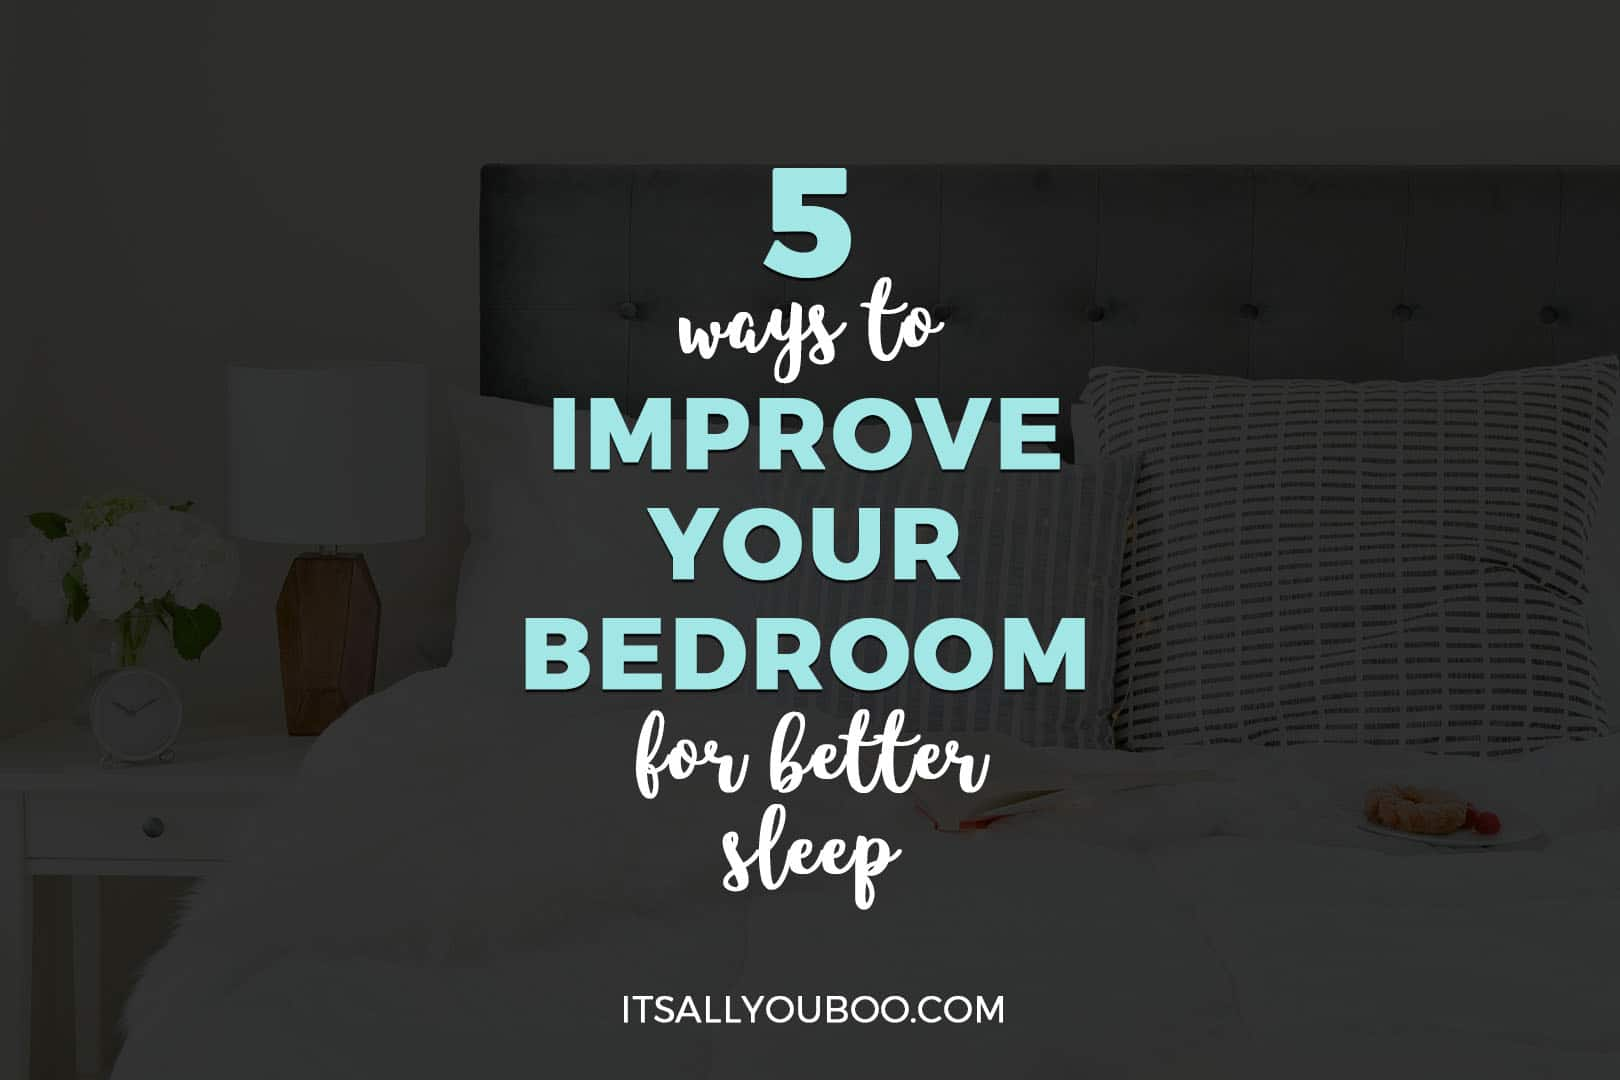 5 Ways to Improve Your Bedroom for Better Sleep